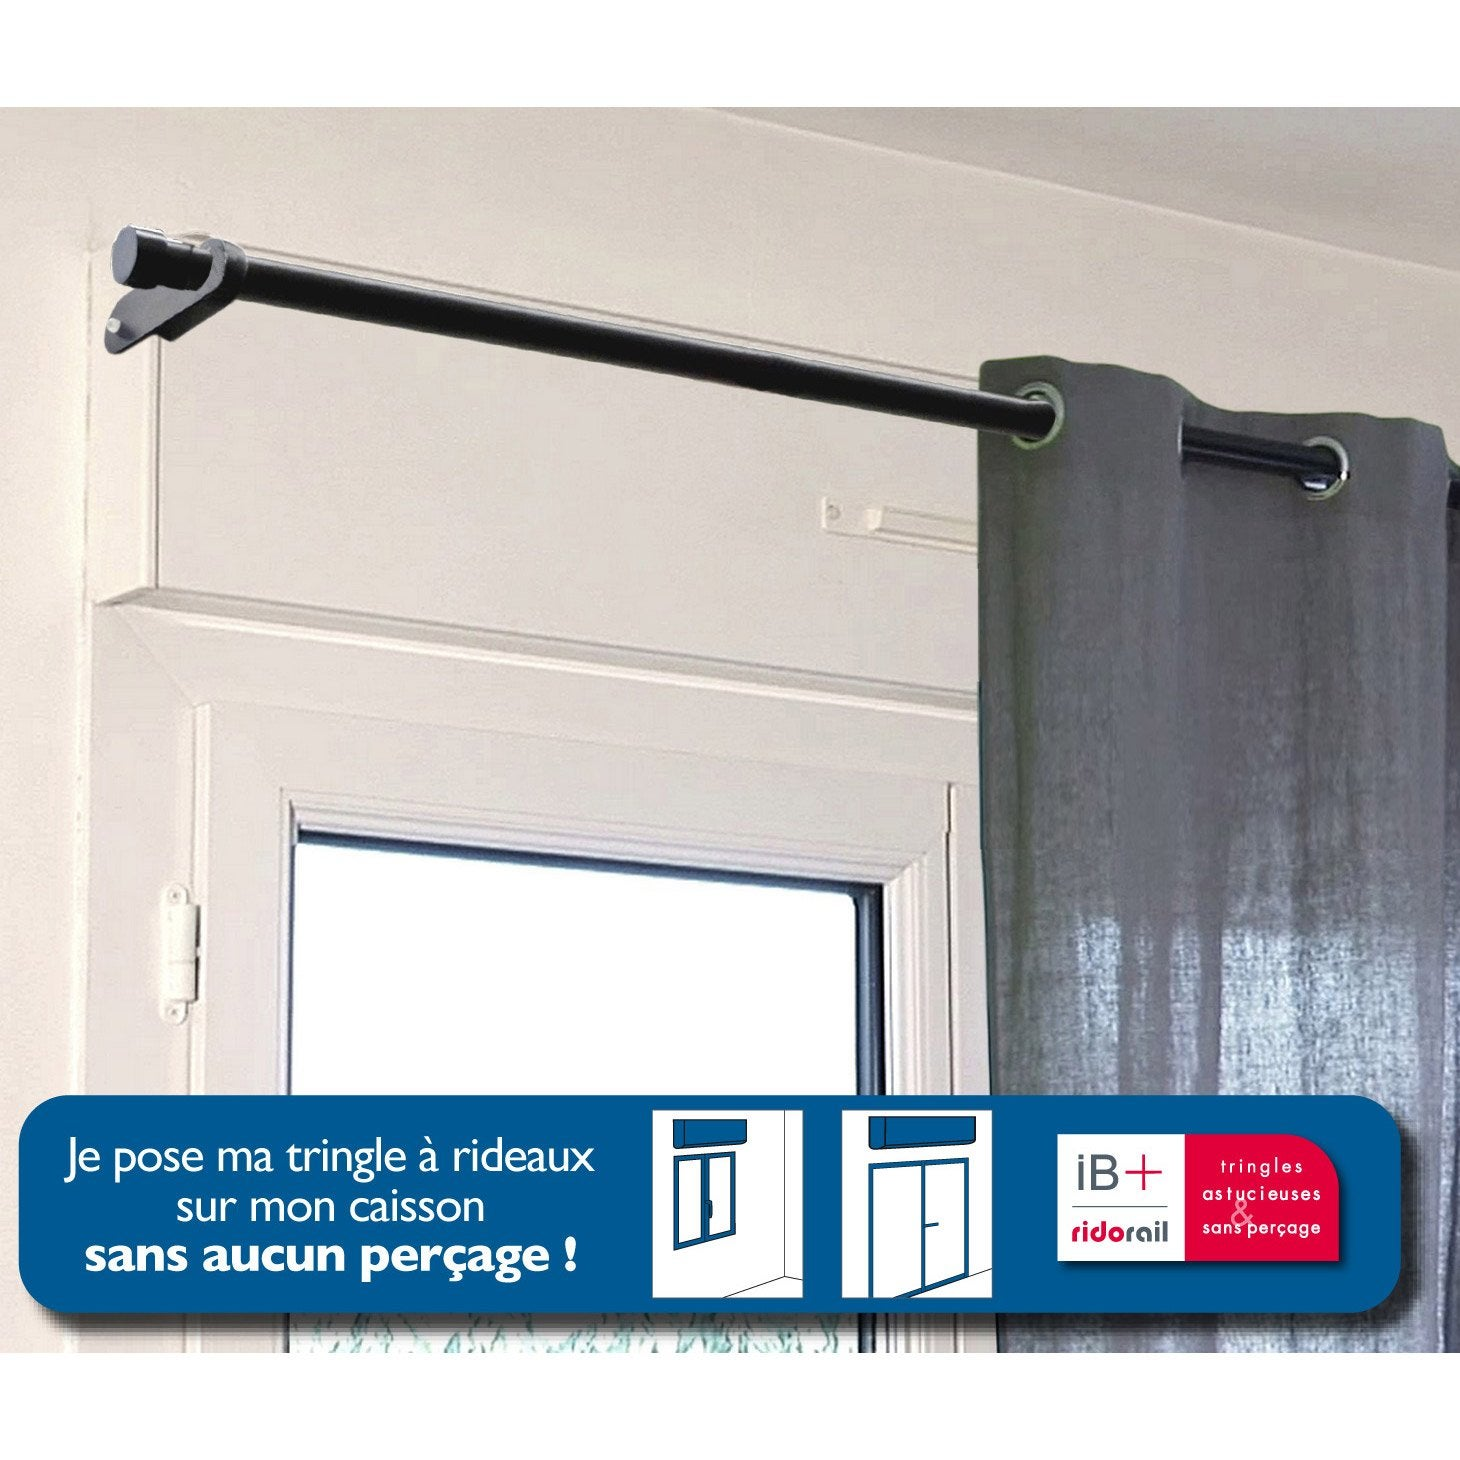 Support sans per age tringle rideau ib 25 mm noir mat ib leroy merlin - Barre rideau porte ...